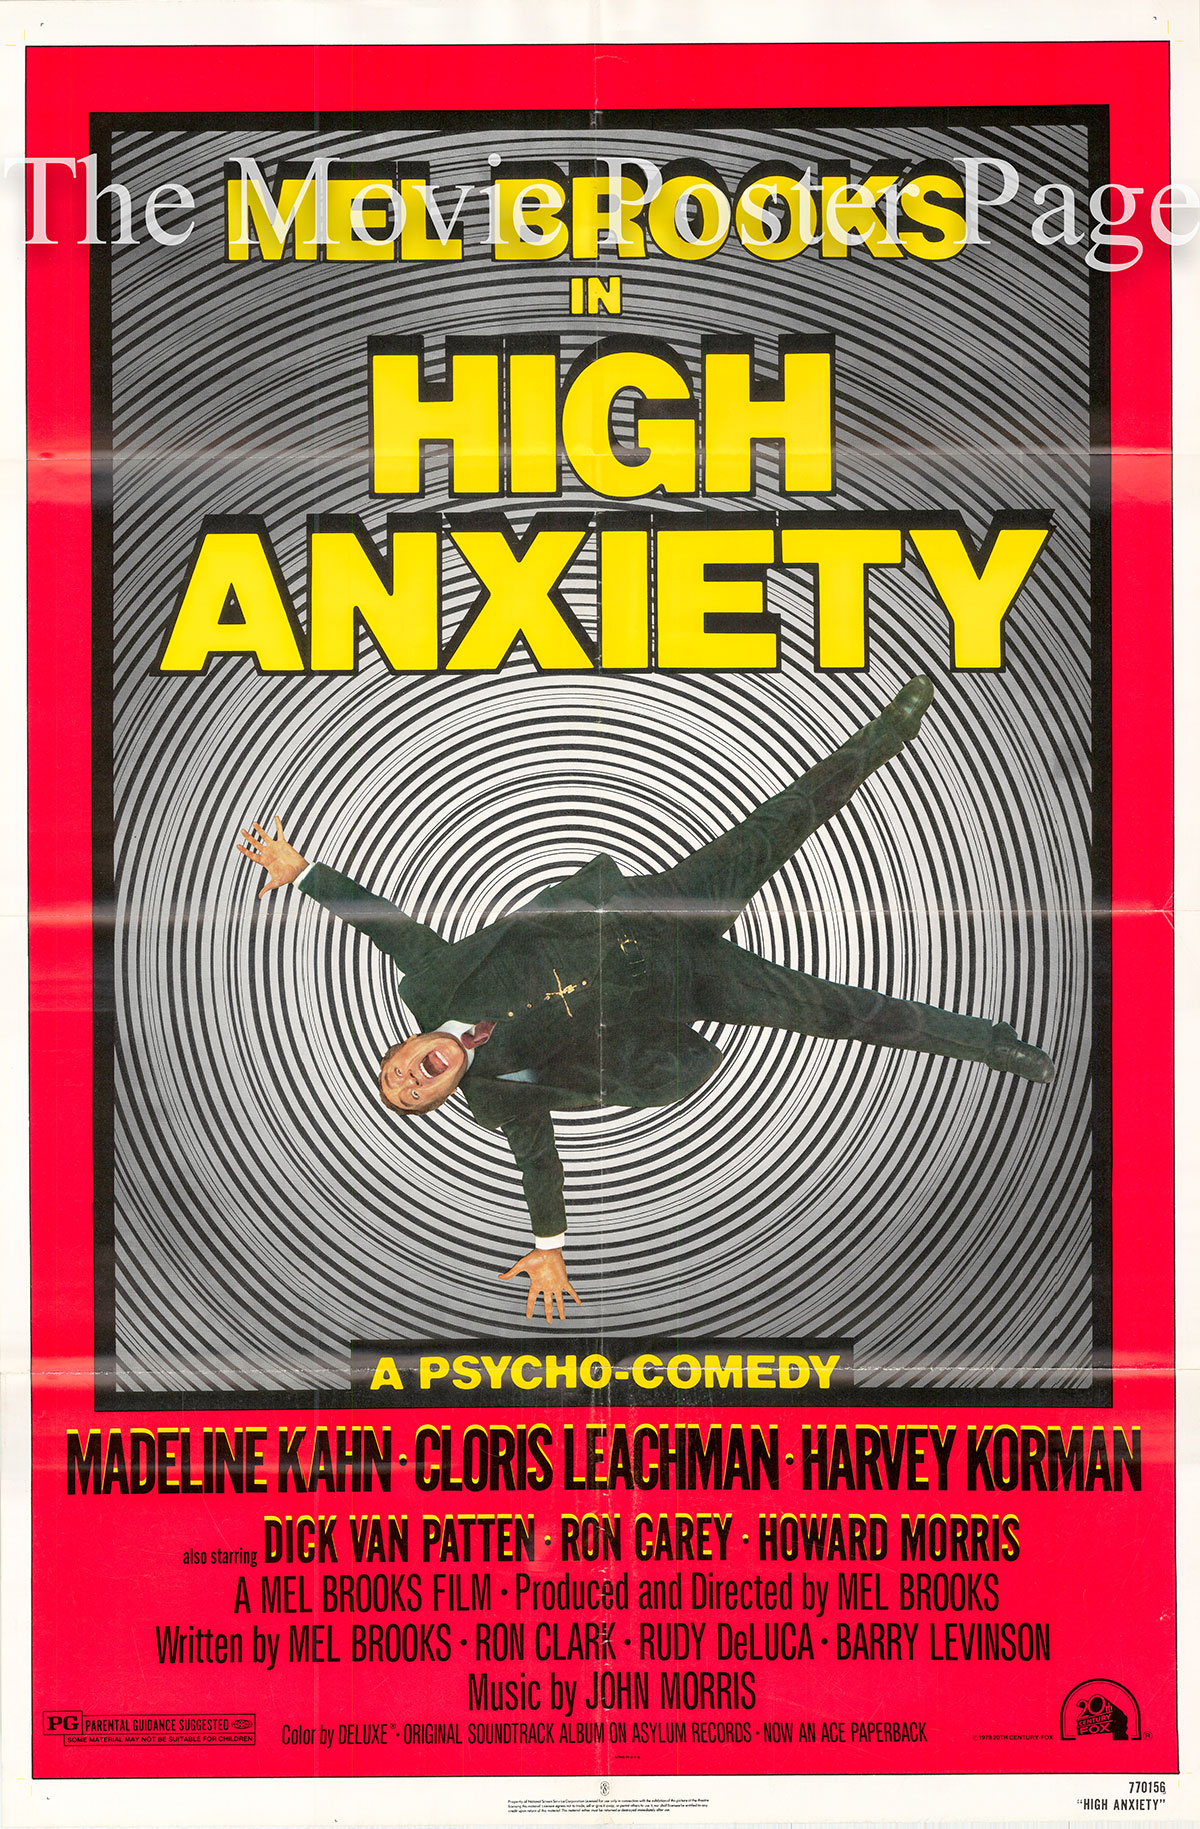 Pictured is a US one-sheet poster for the 1977 Mel Brooks film High Anxiety starring Madeline Kahn as Victoria Brisbane.